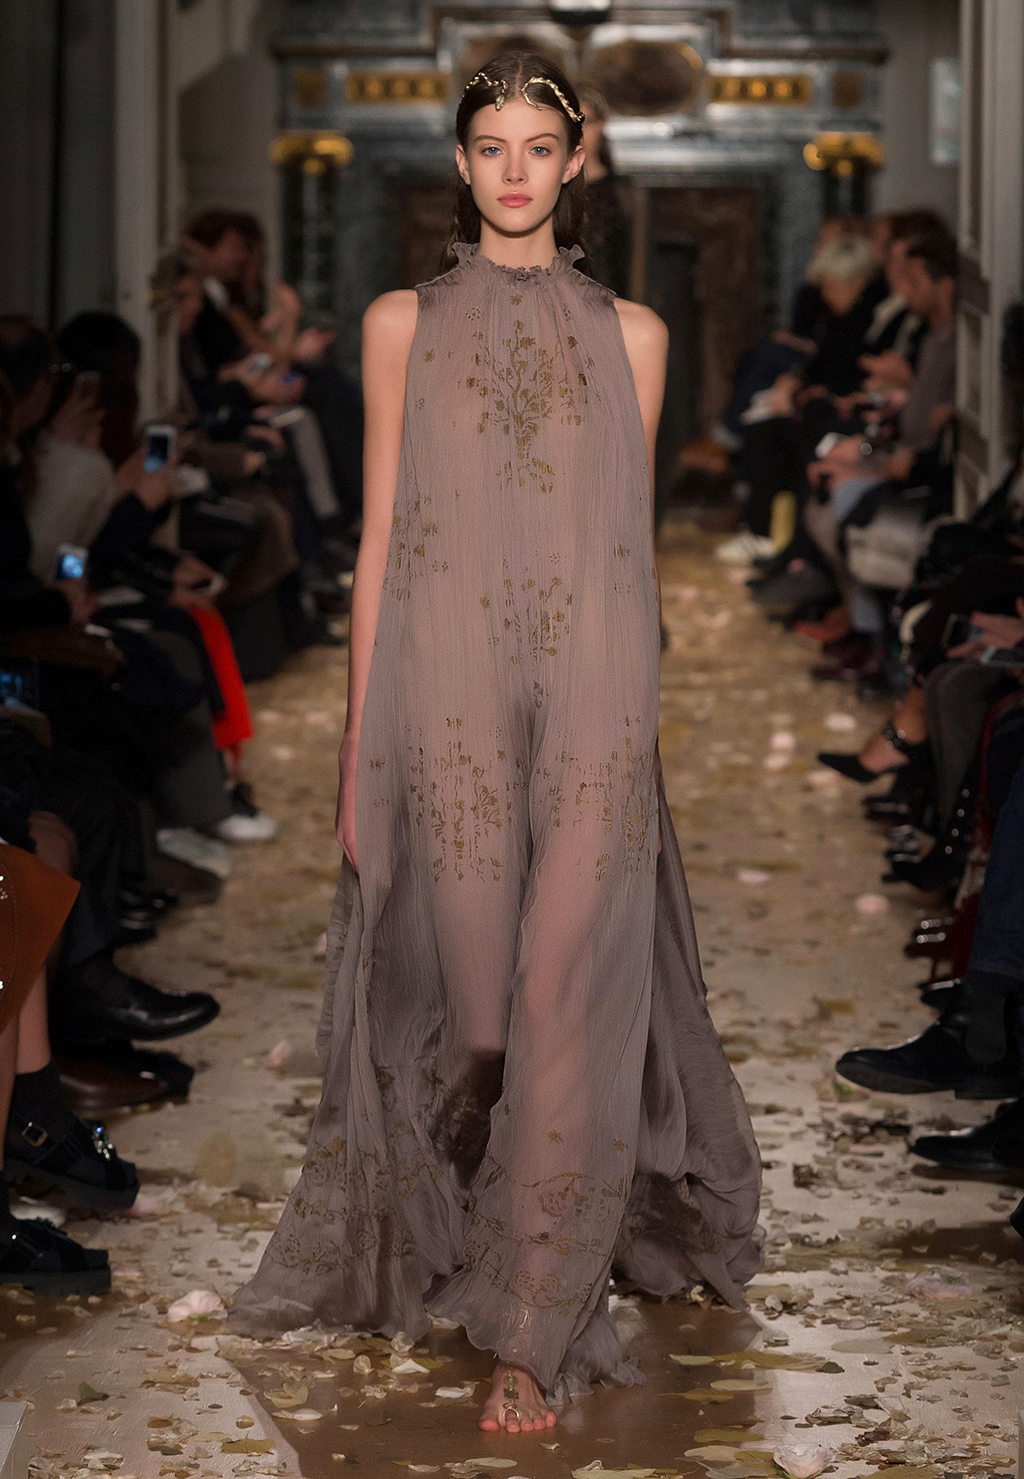 Look - Haute valentino couture spring video